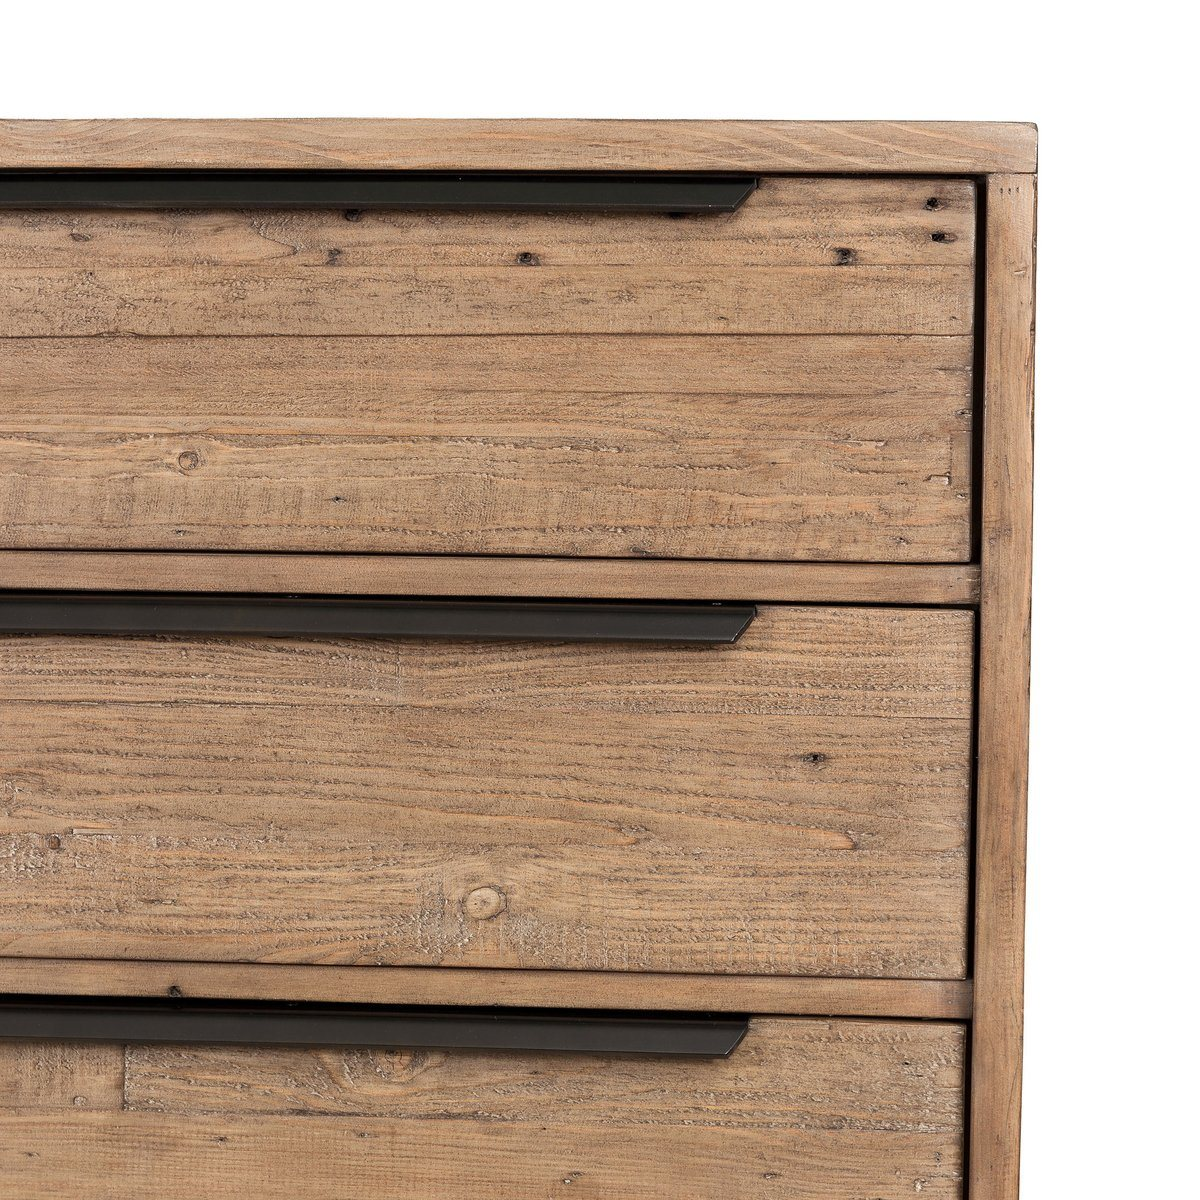 5 DRAWER DRESSER - RUSTIC SUNDRIED ASH Dressers Showhome Furniture